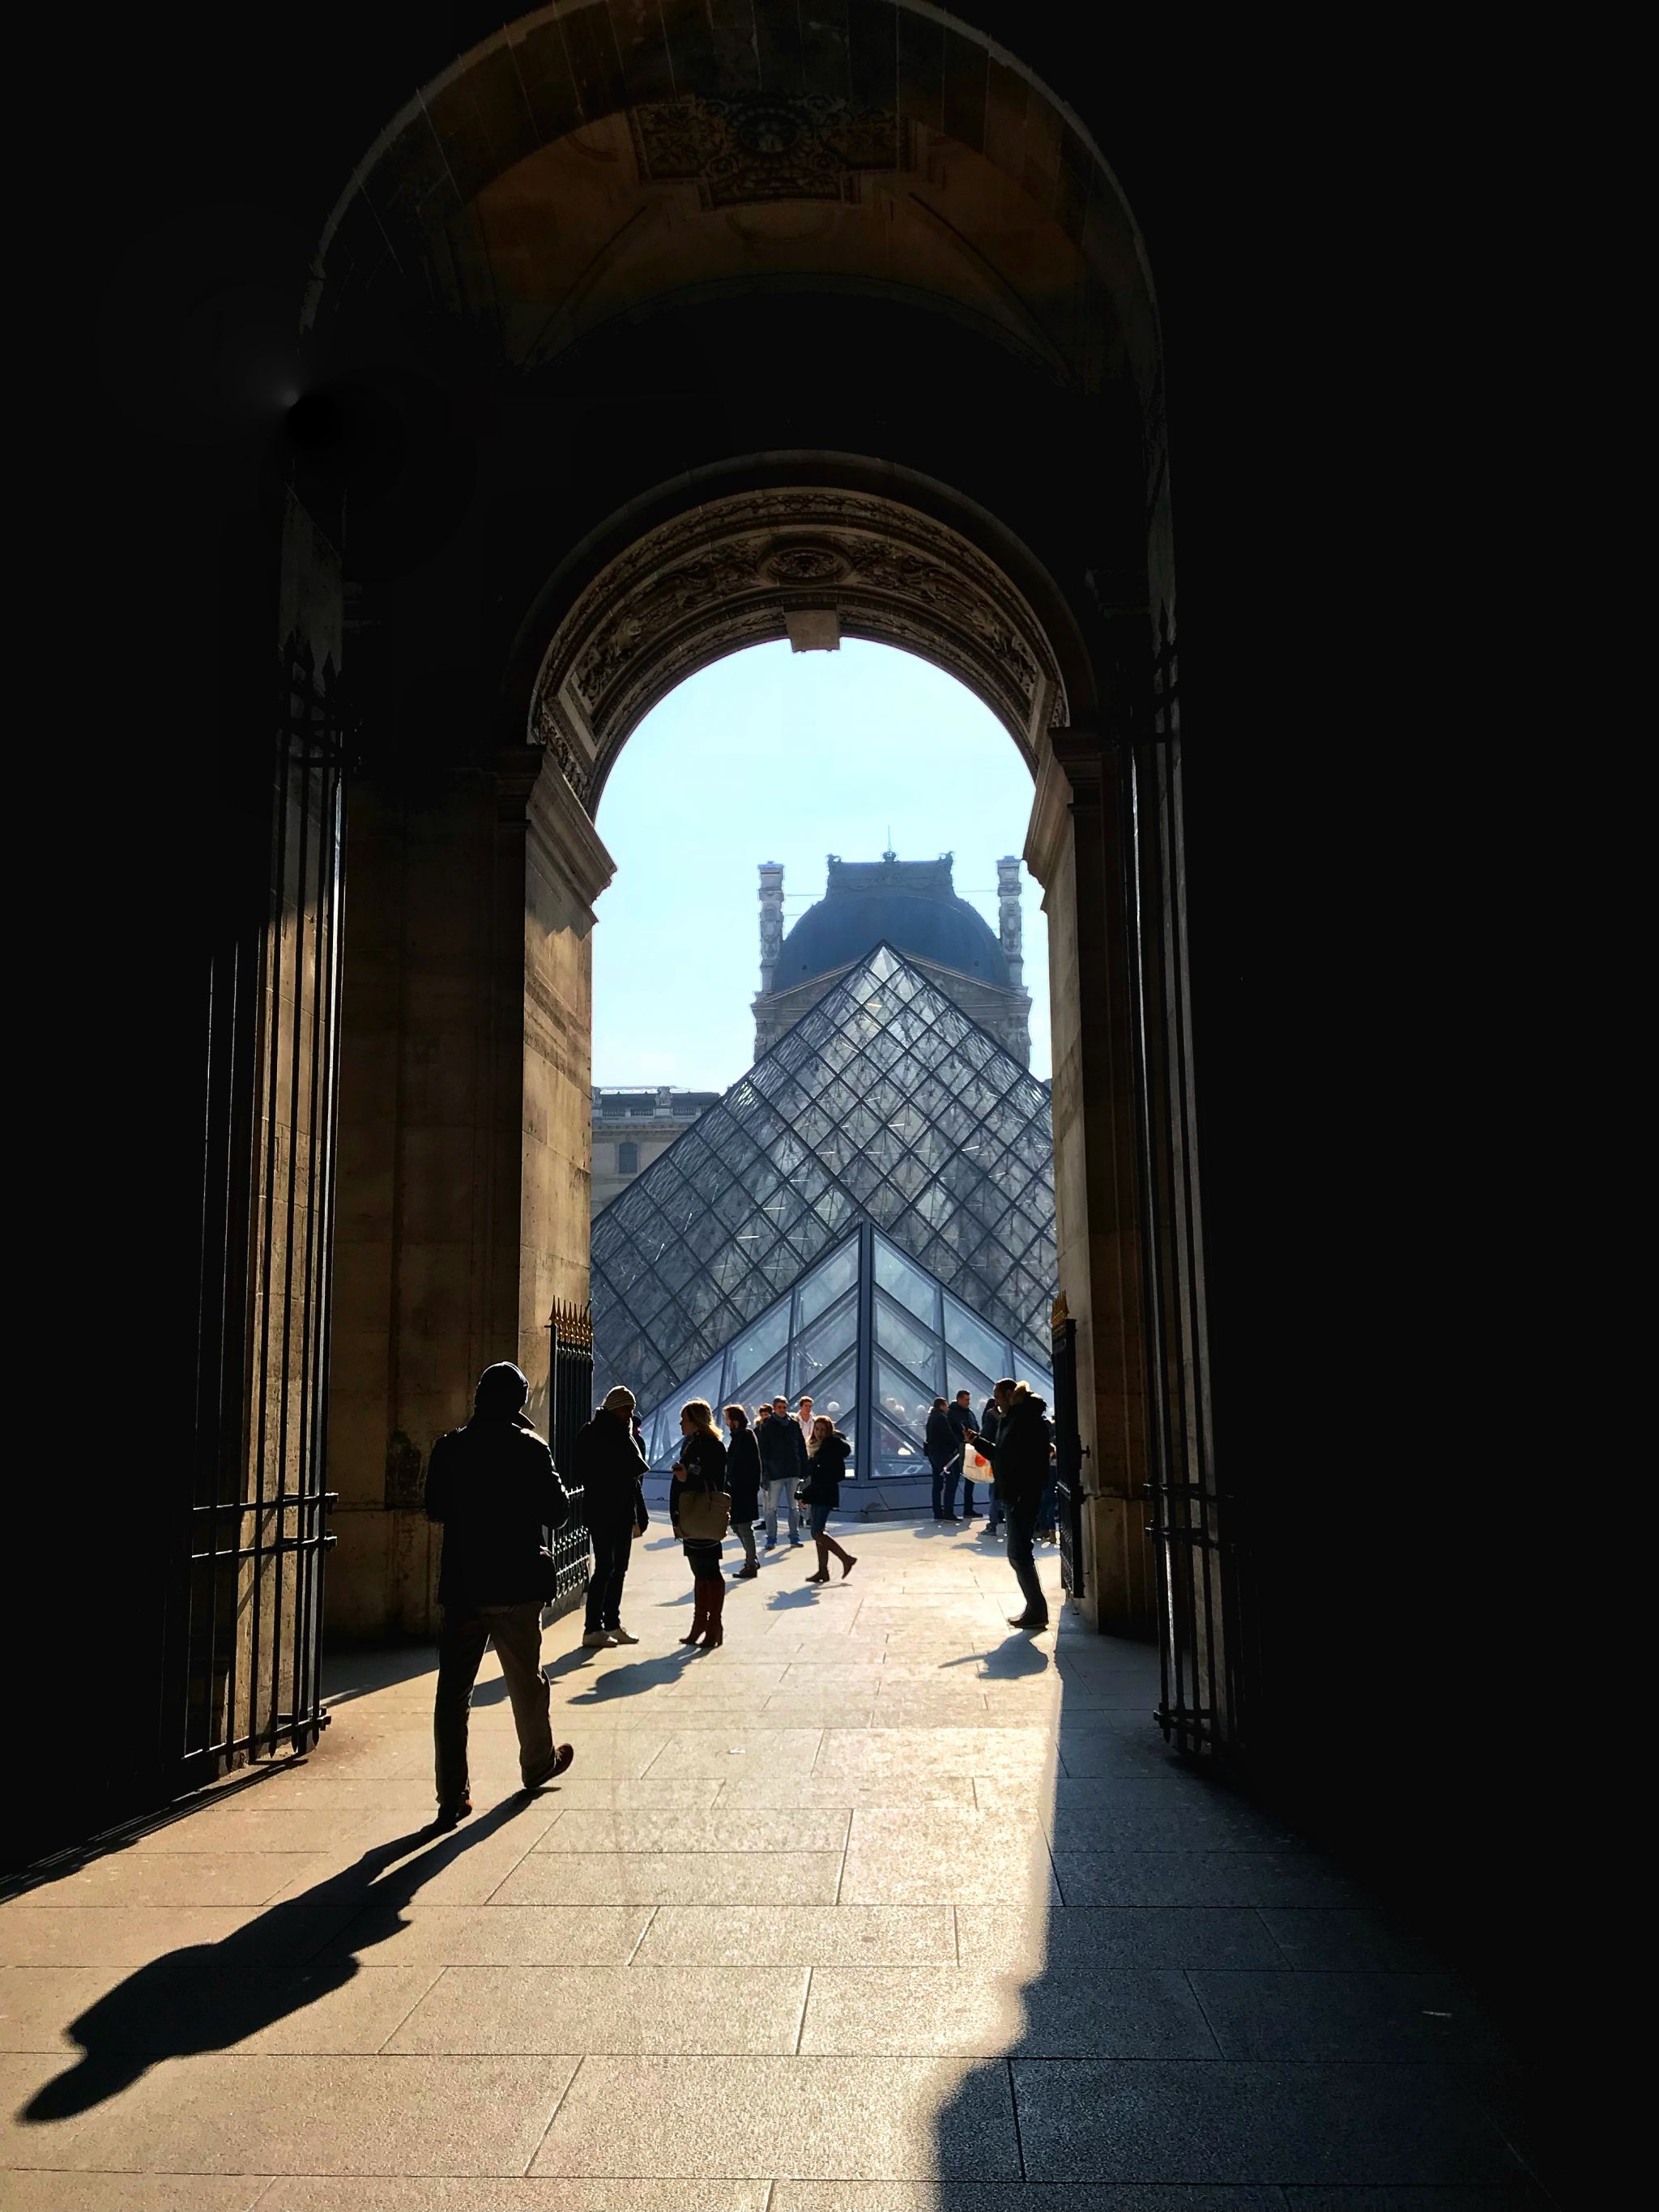 Shadows in the archway to The Louvre Paris